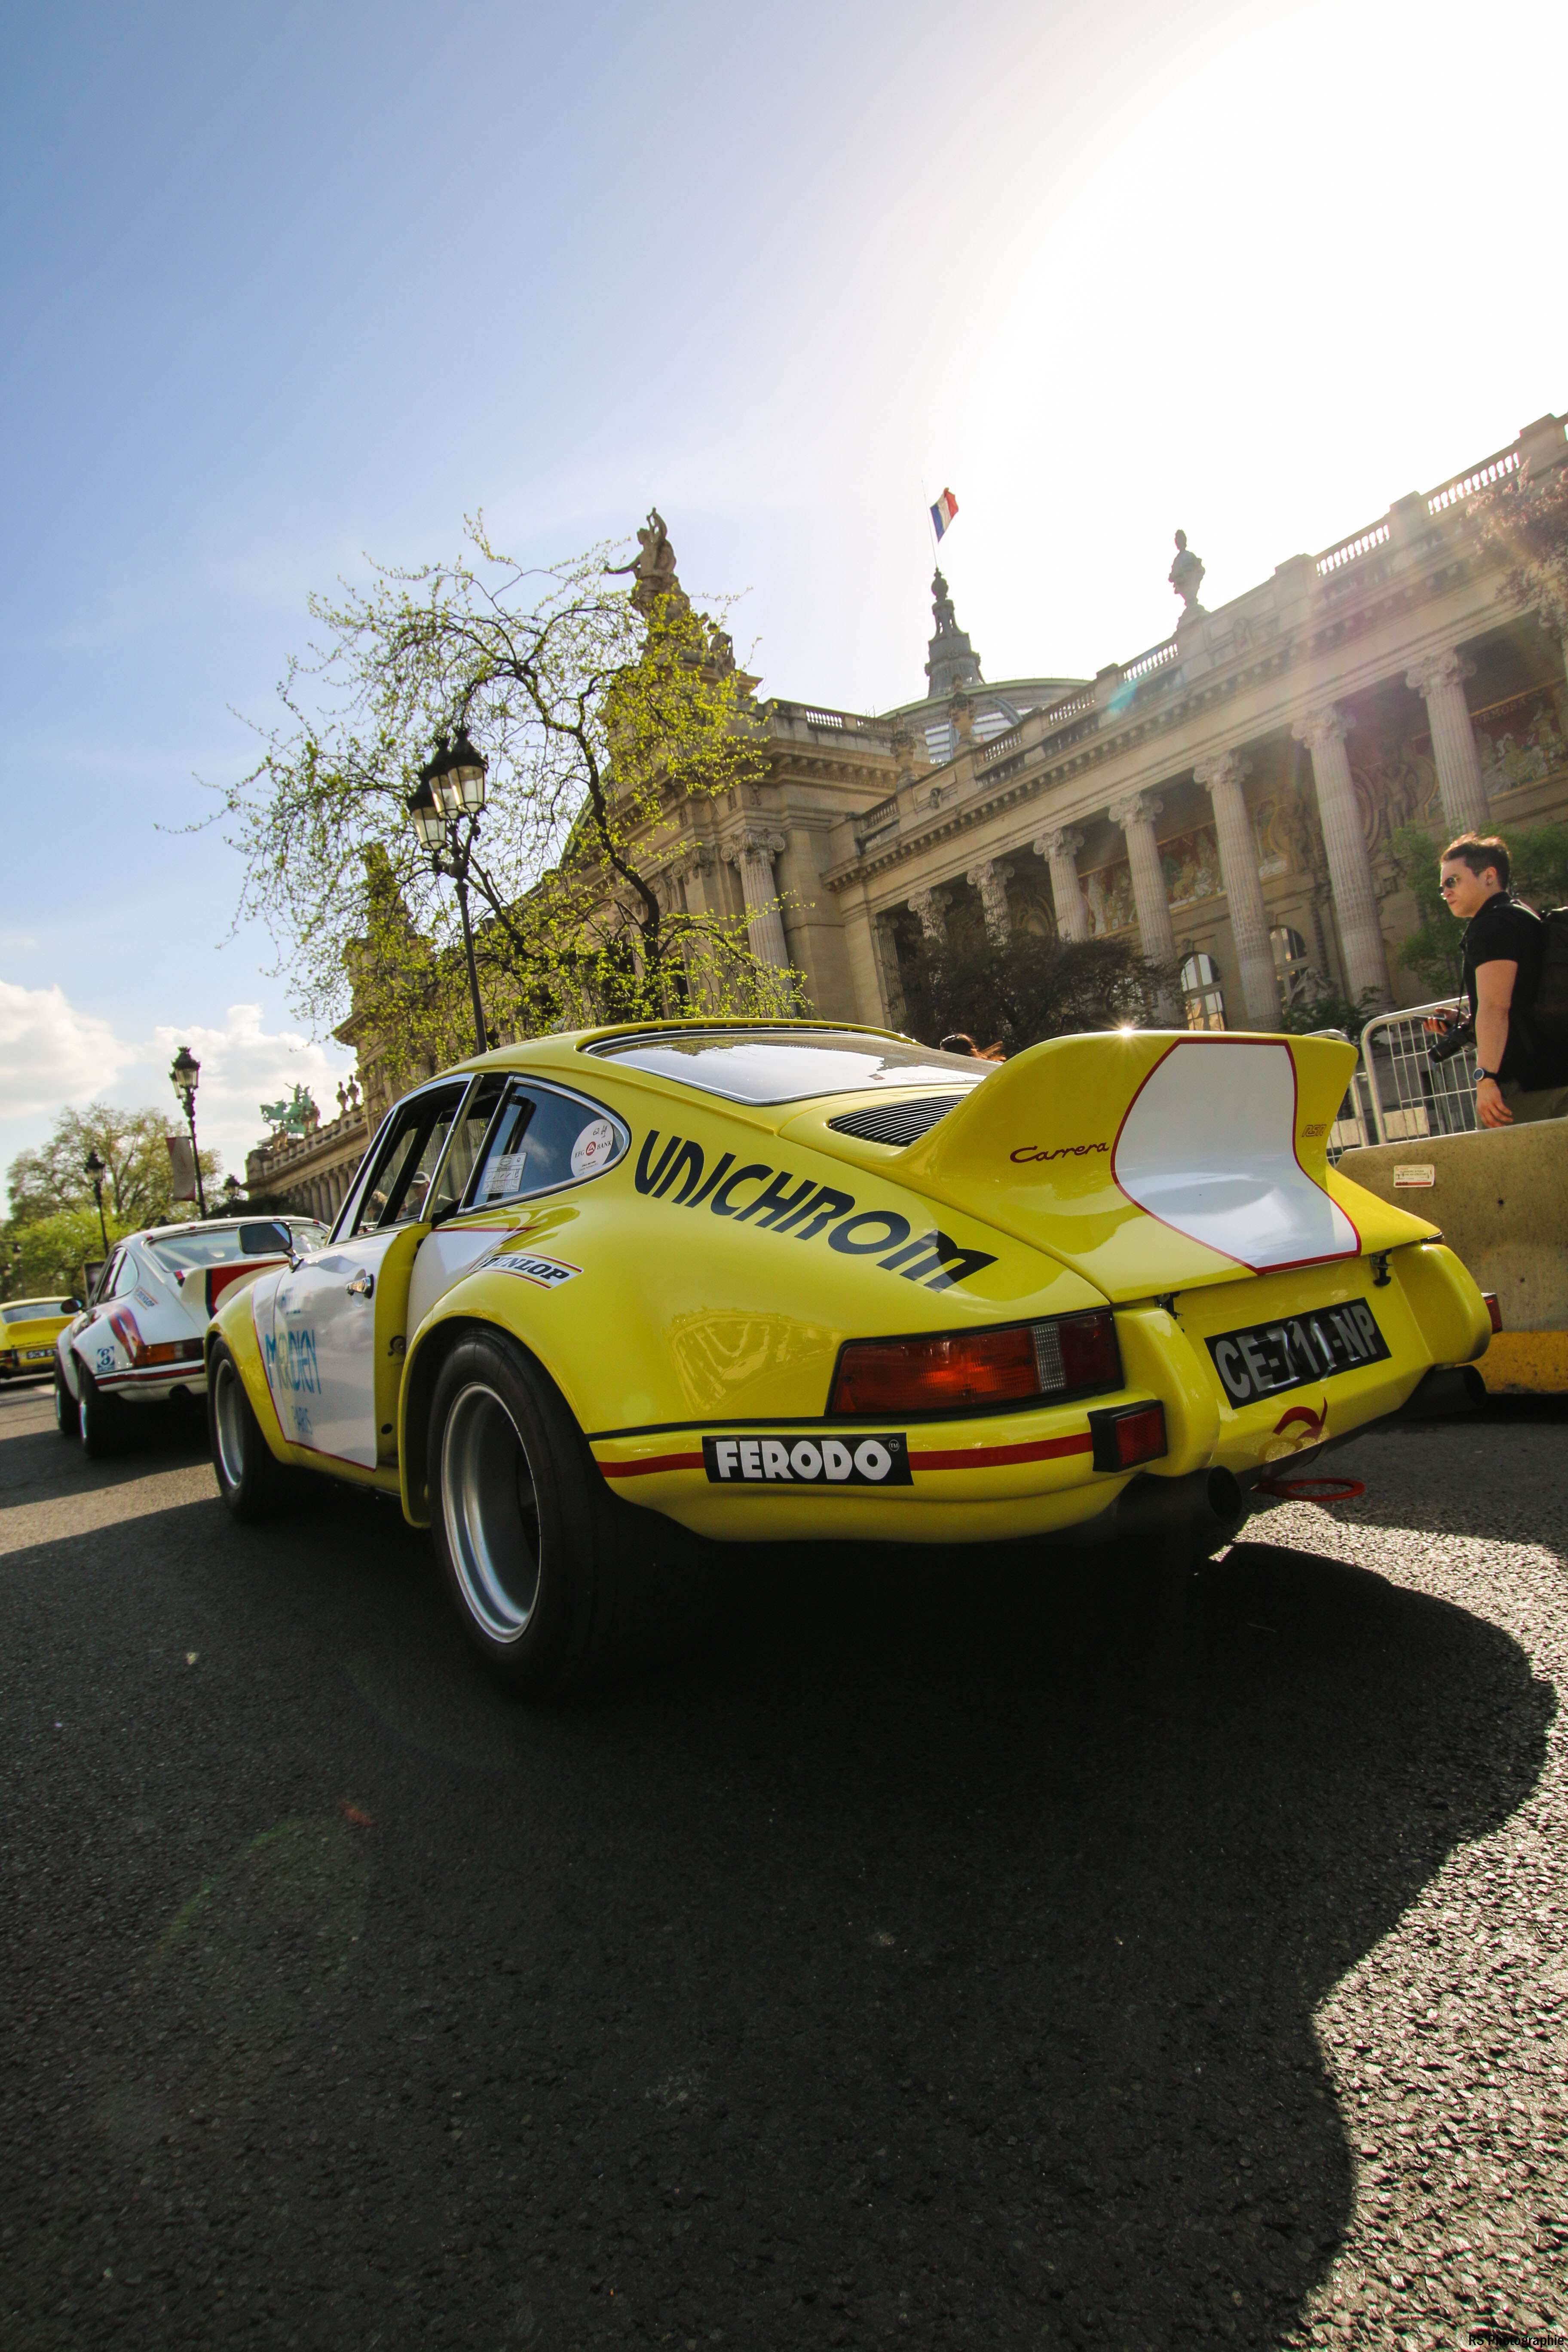 Porsche 911 Carrera RSR 2.8L livery Meridien Unichrom - rear - 1973 - Paris - Tour Auto - 2018 – photo by Arnaud Demasier RS Photographie